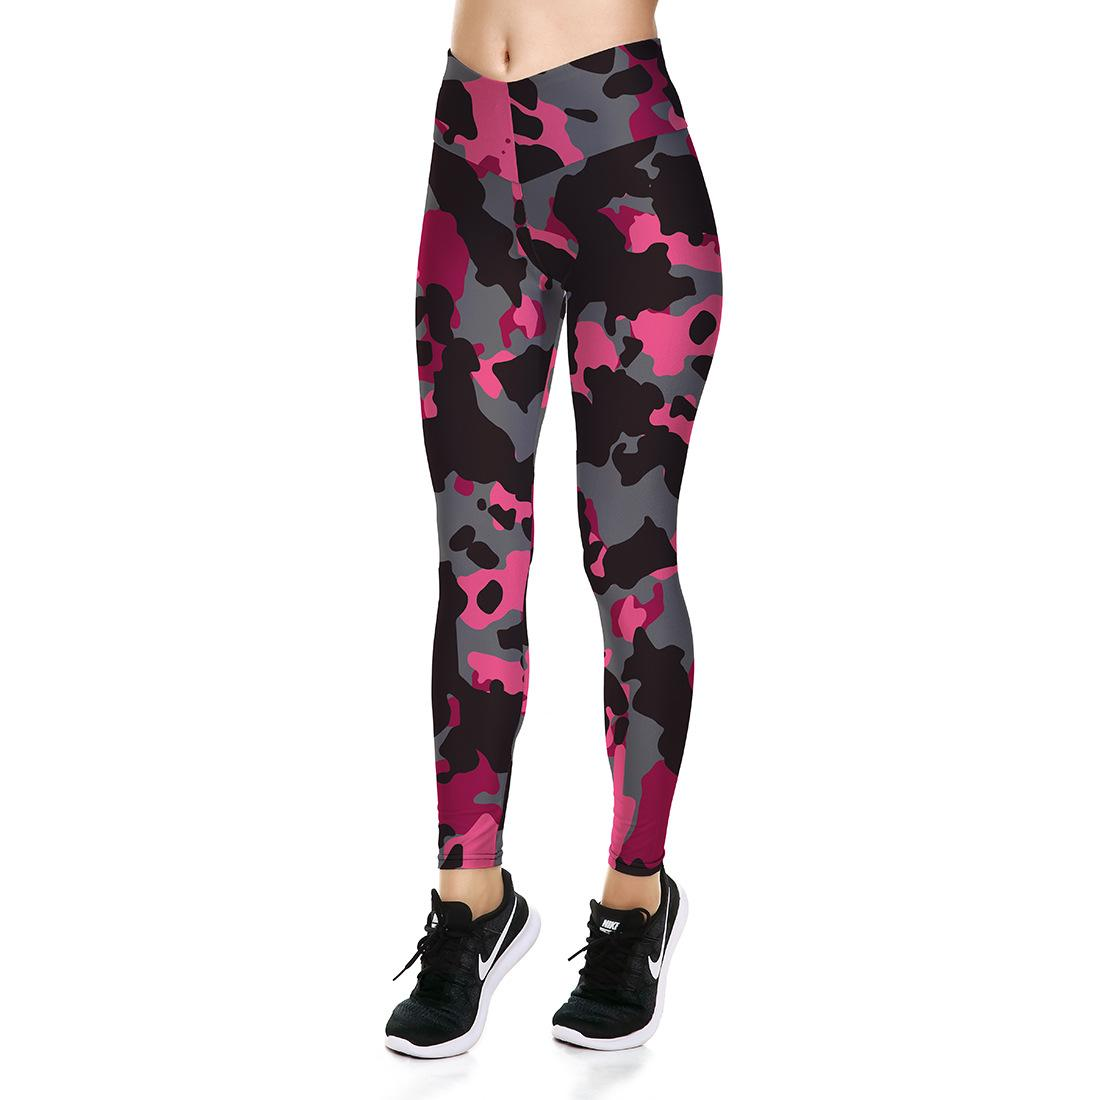 9c32963c5b0d4 Women's High-waisted Yoga Pants Pink camouflage Printed Leggings For Gym  Fitness Sports Pants LGS31-032